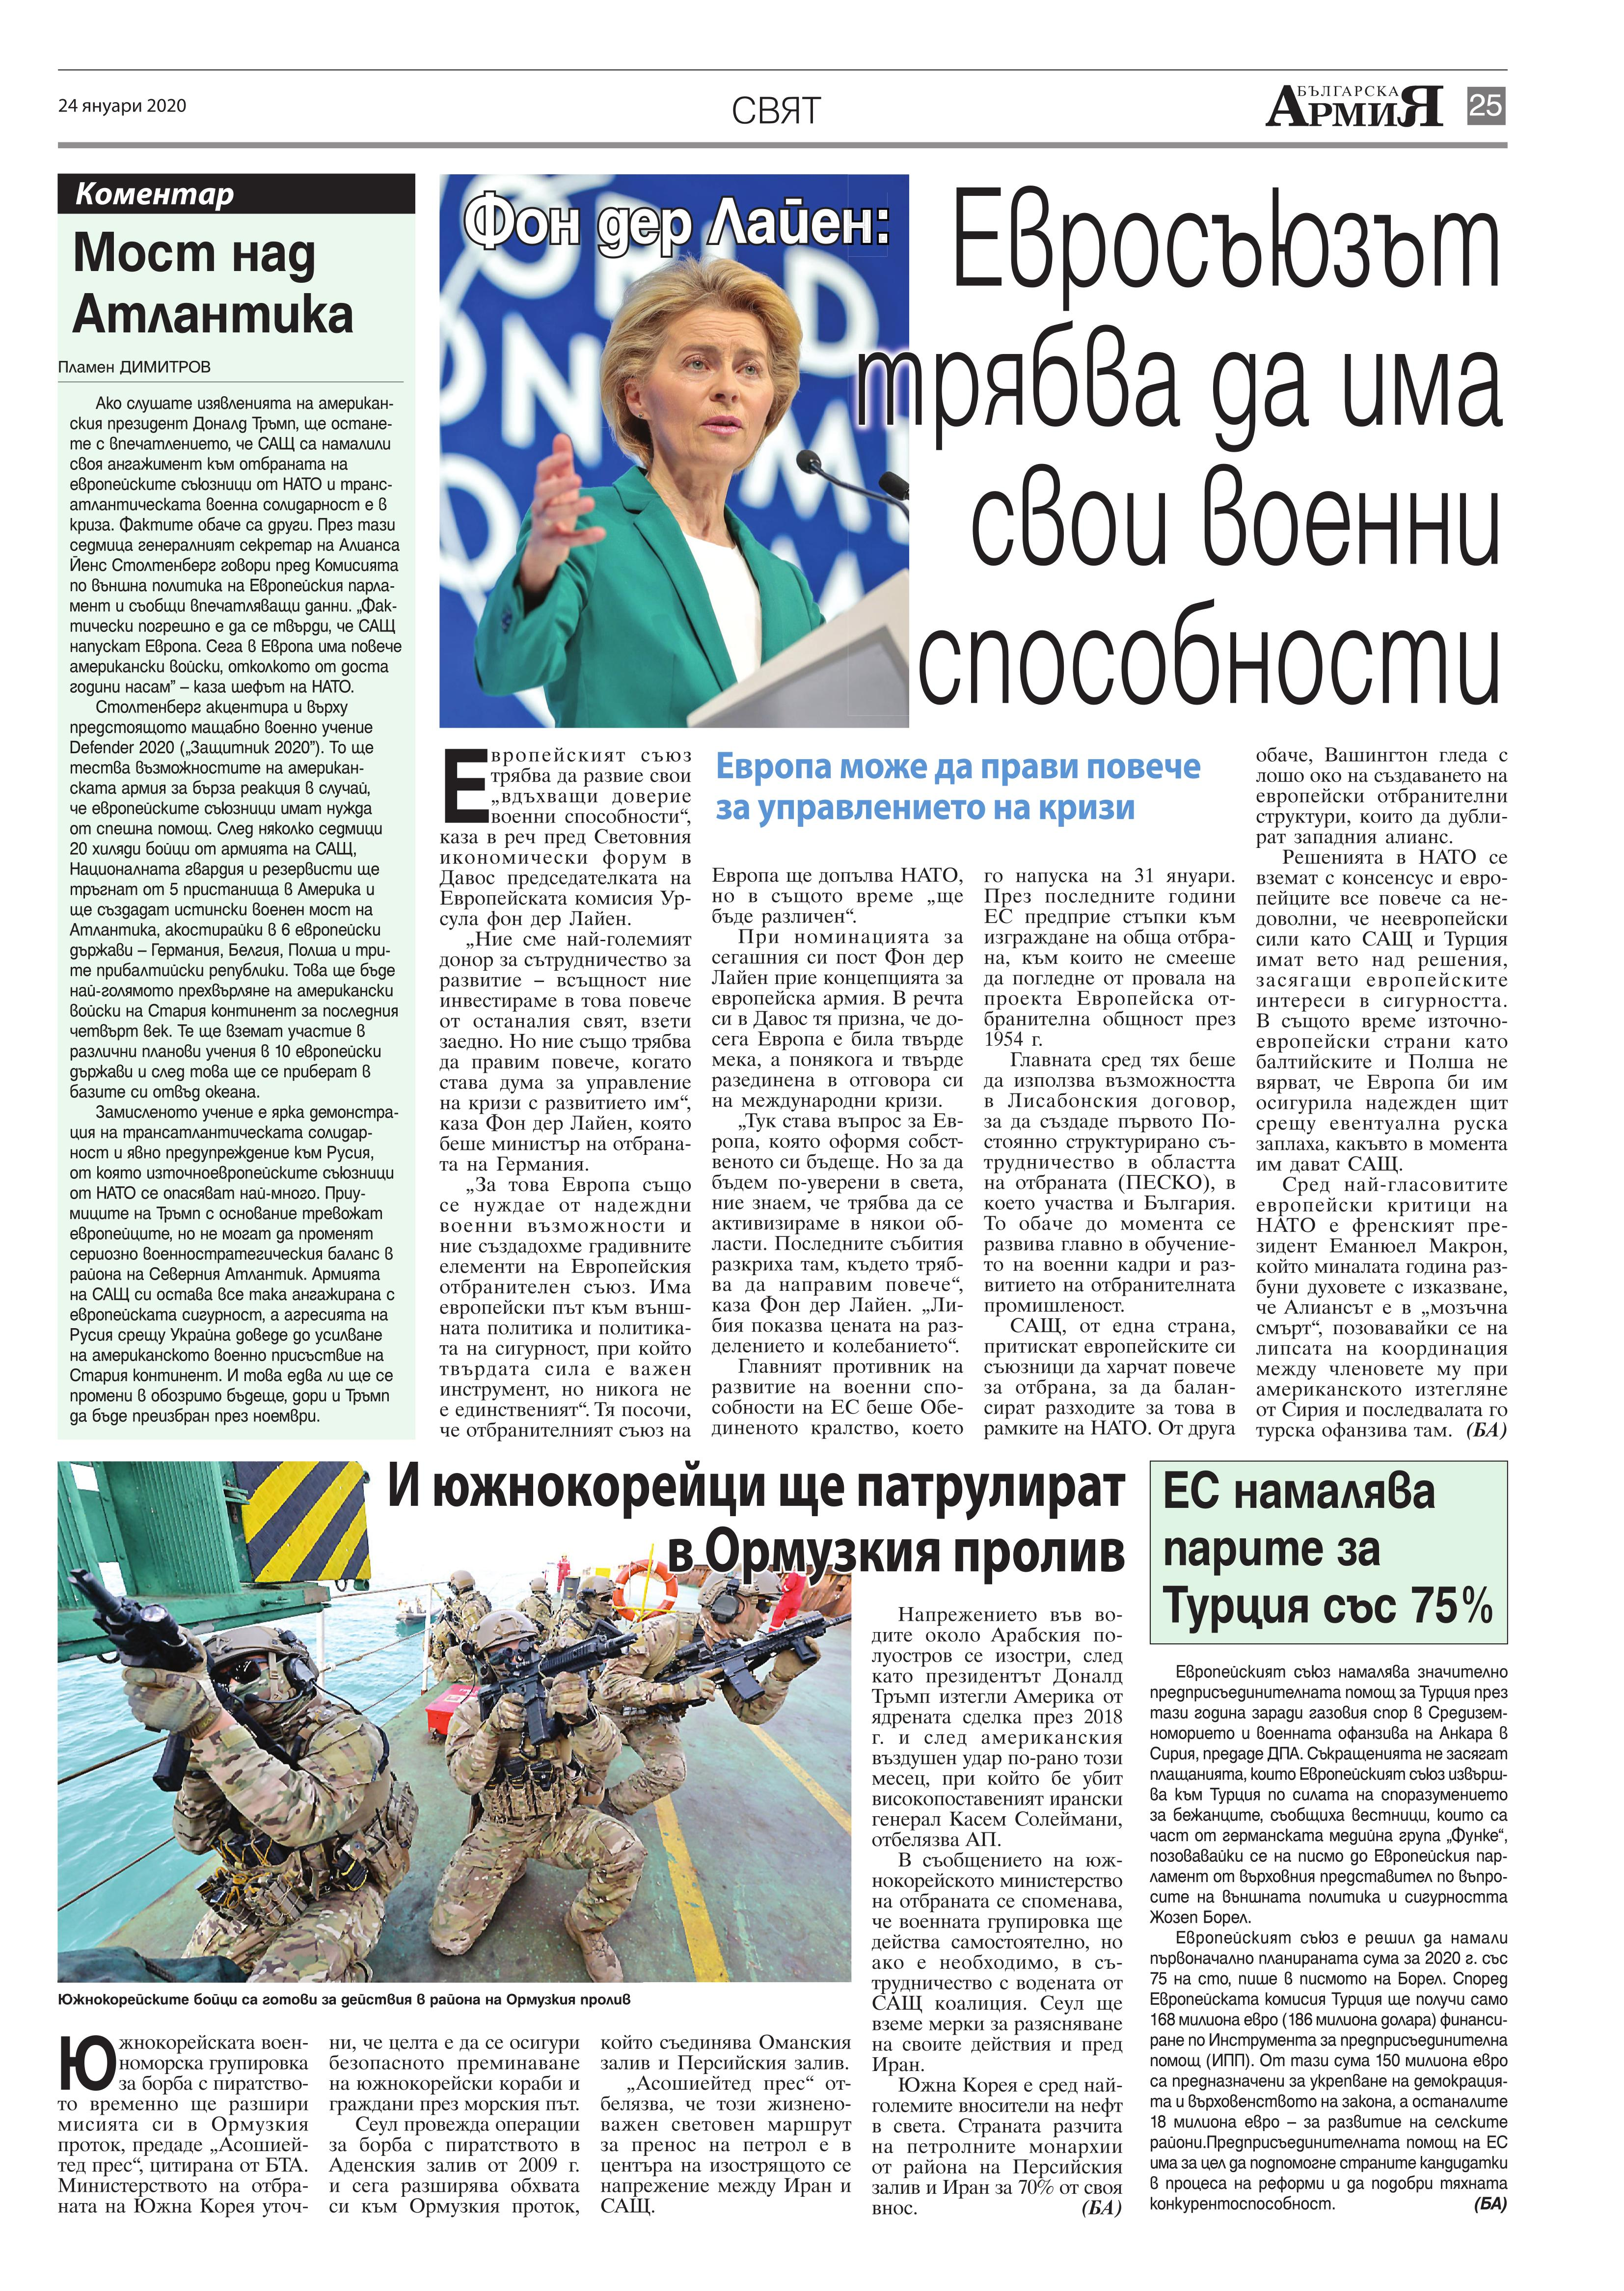 https://armymedia.bg/wp-content/uploads/2015/06/25.page1_-104.jpg